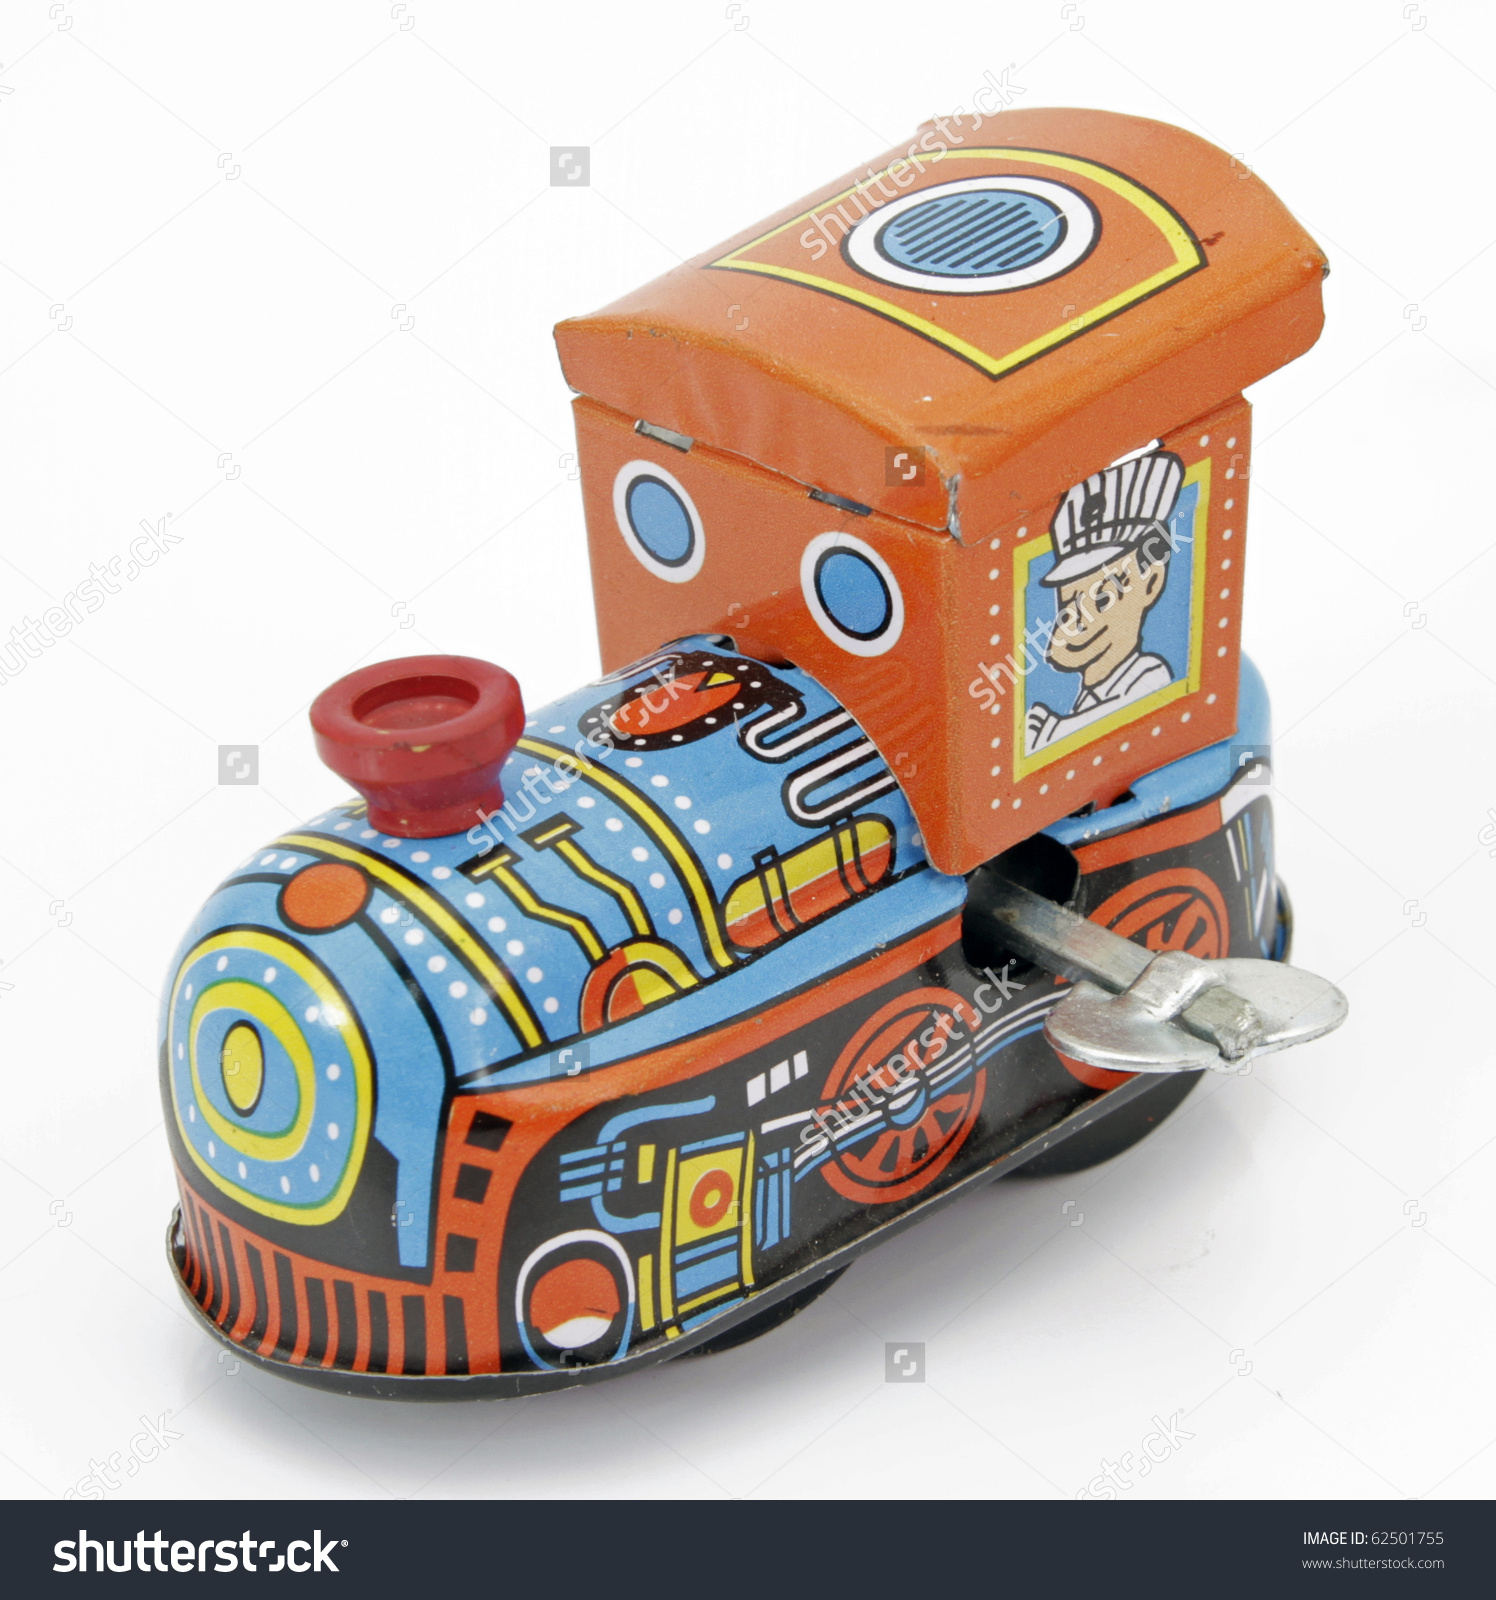 Old Tin Toy Train Stock Photo 62501755 : Shutterstock.